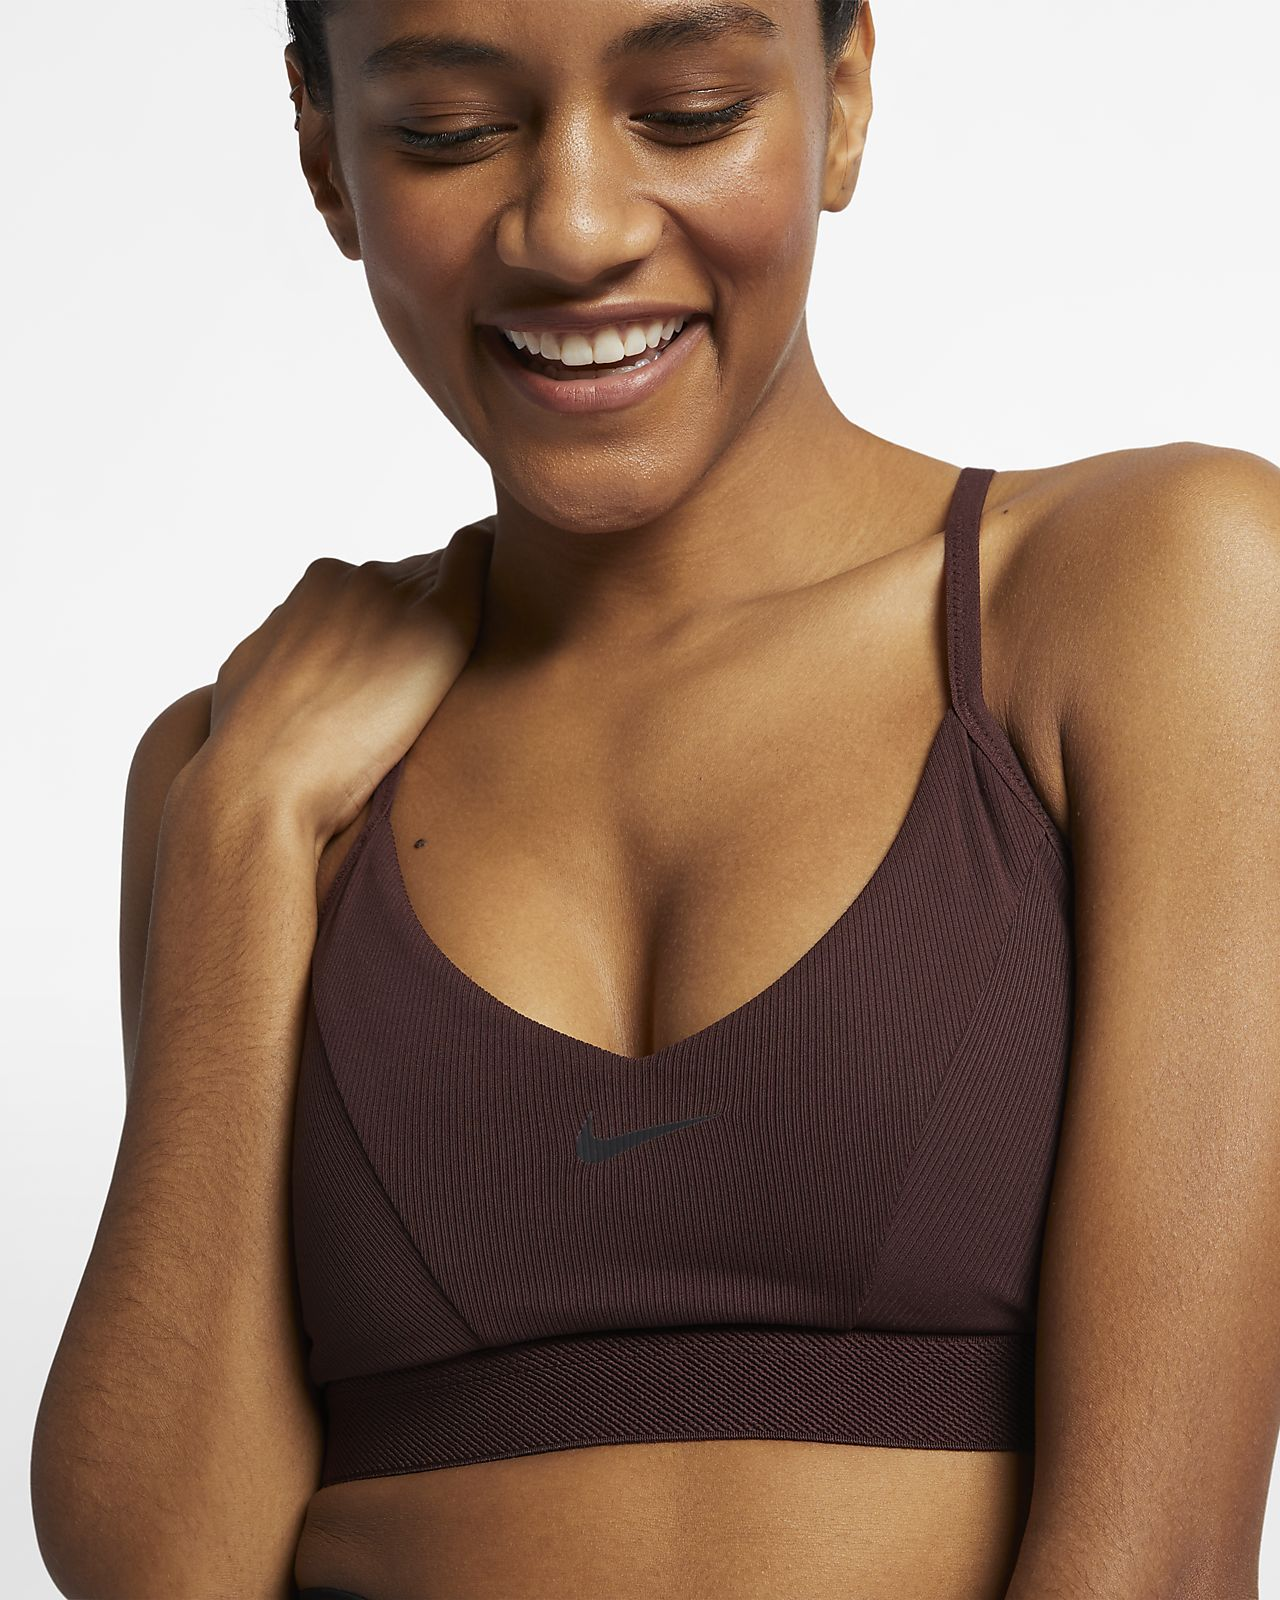 61cb4e4484 Nike Indy Women s Ribbed Light Support Sports Bra. Nike.com AU